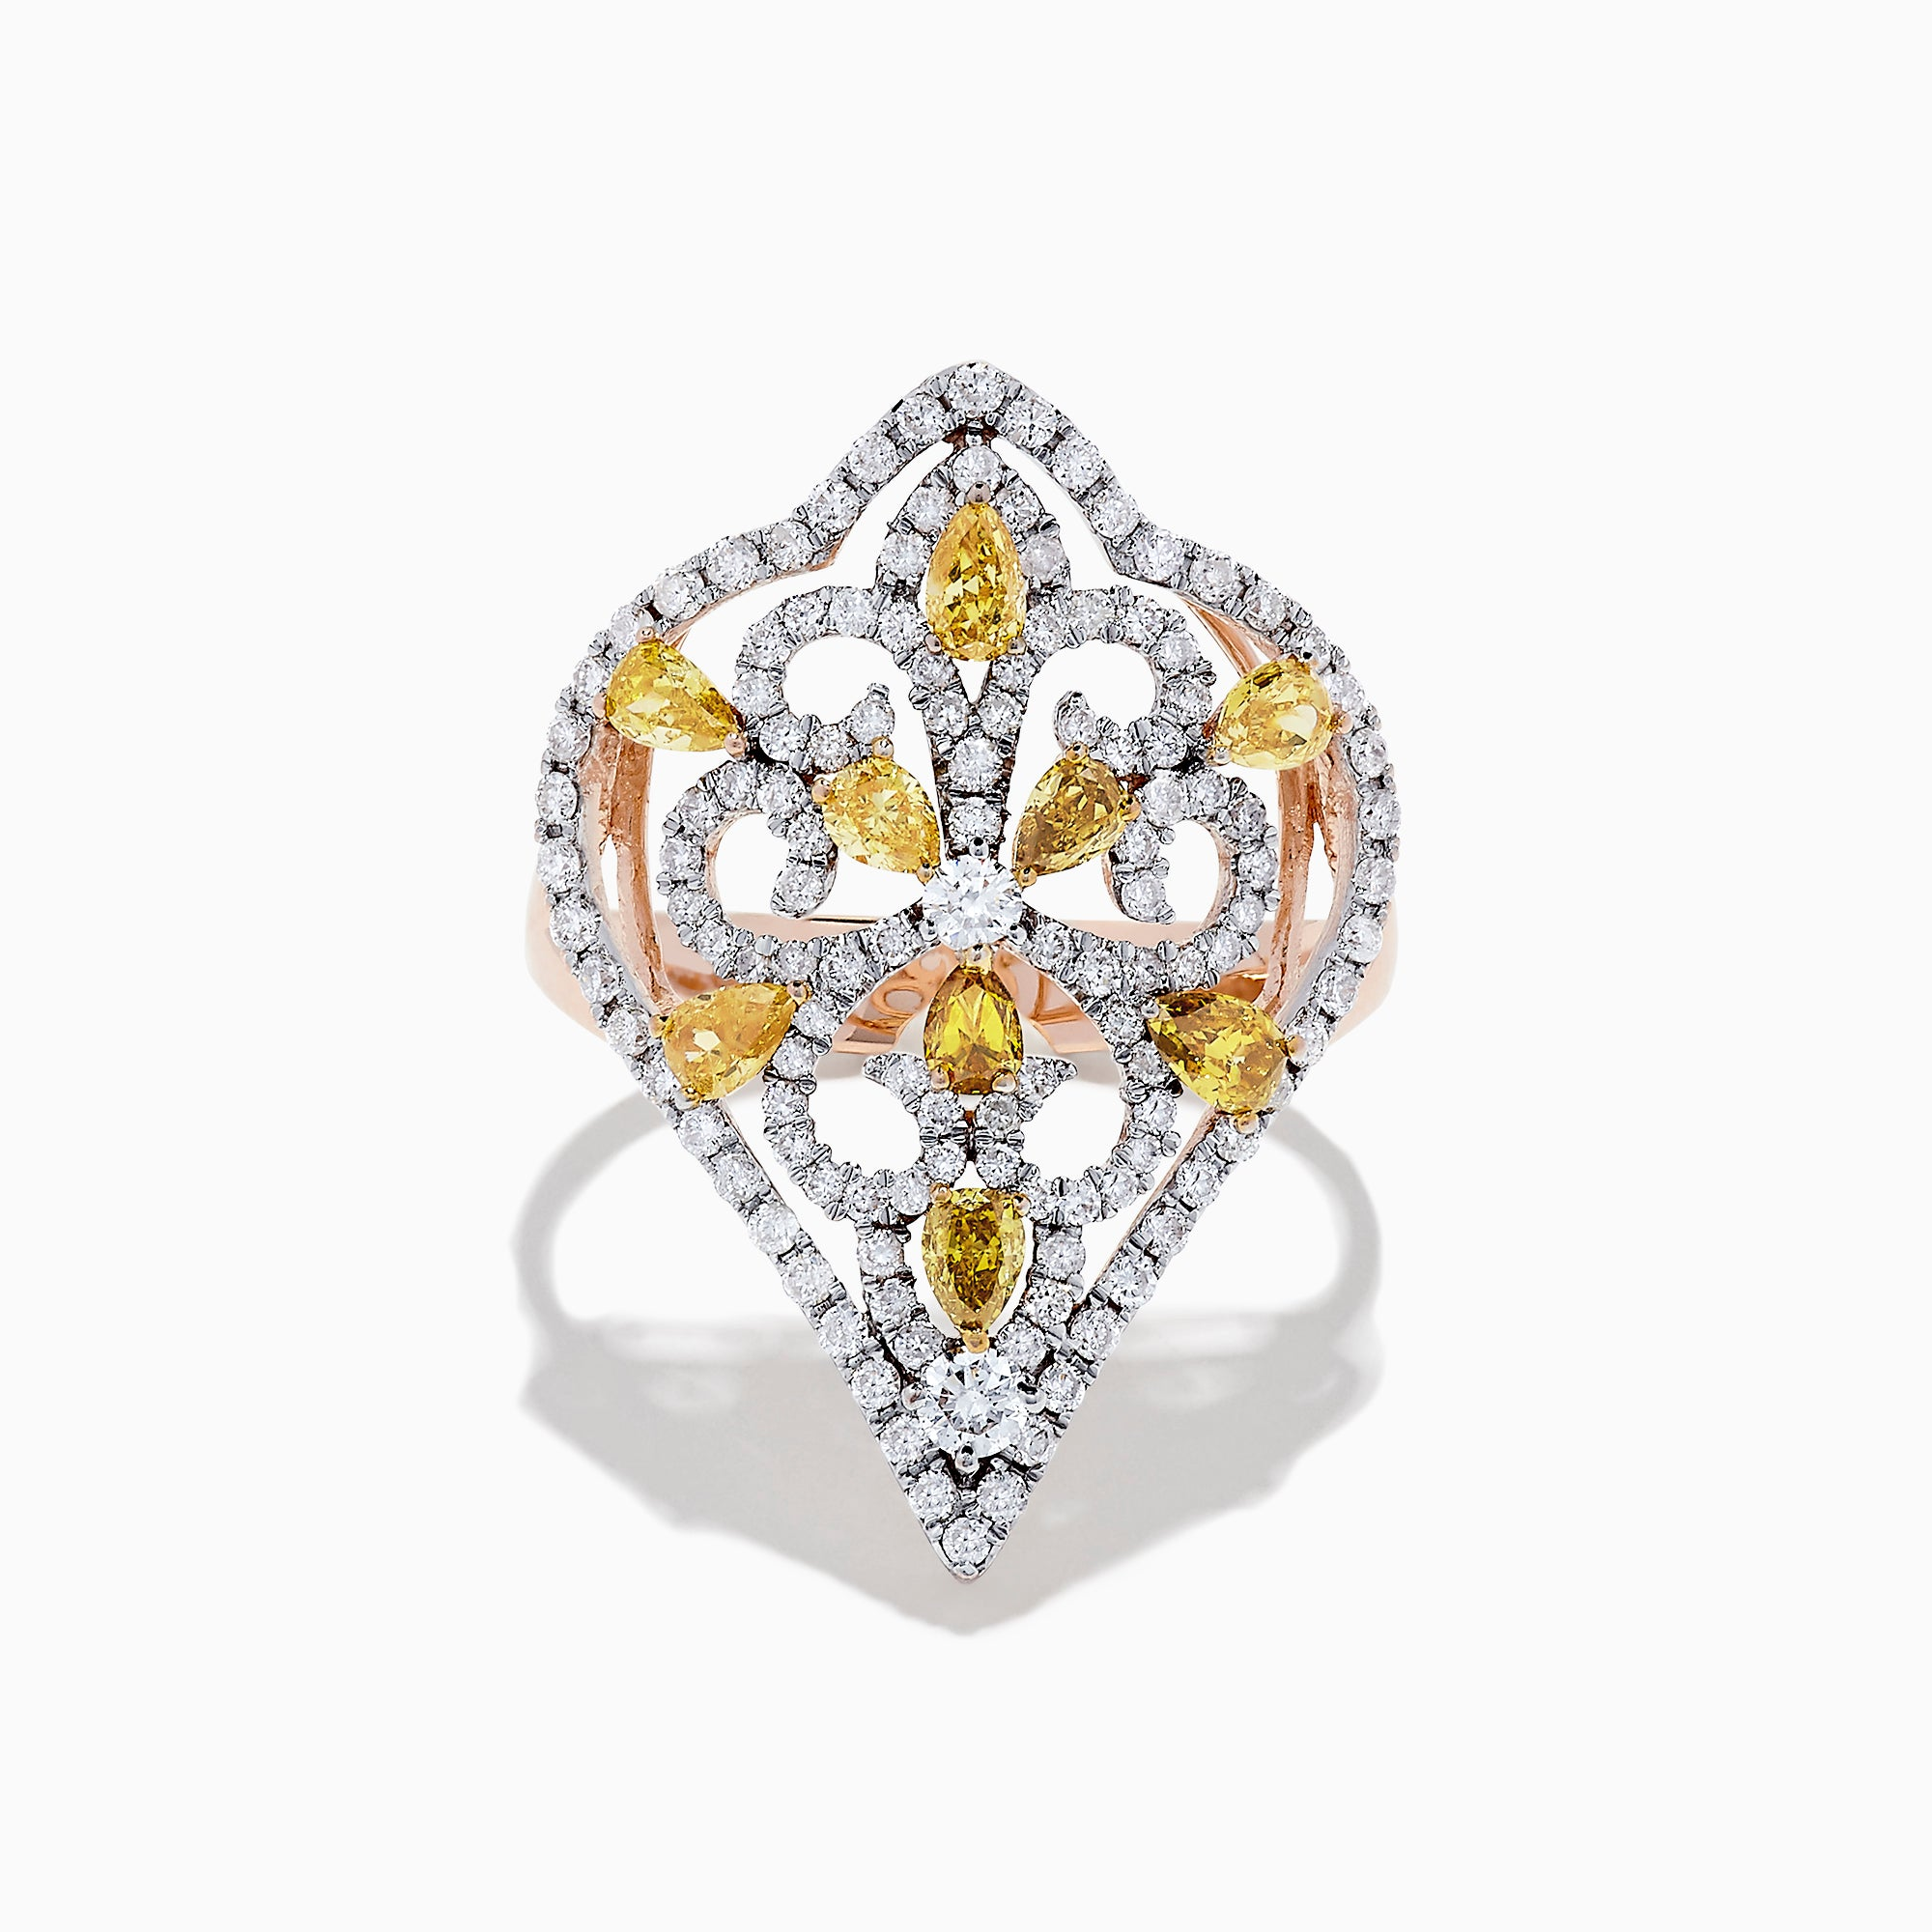 14K Rose Gold Yellow and White Diamond Filagree Ring, 1.55 TCW